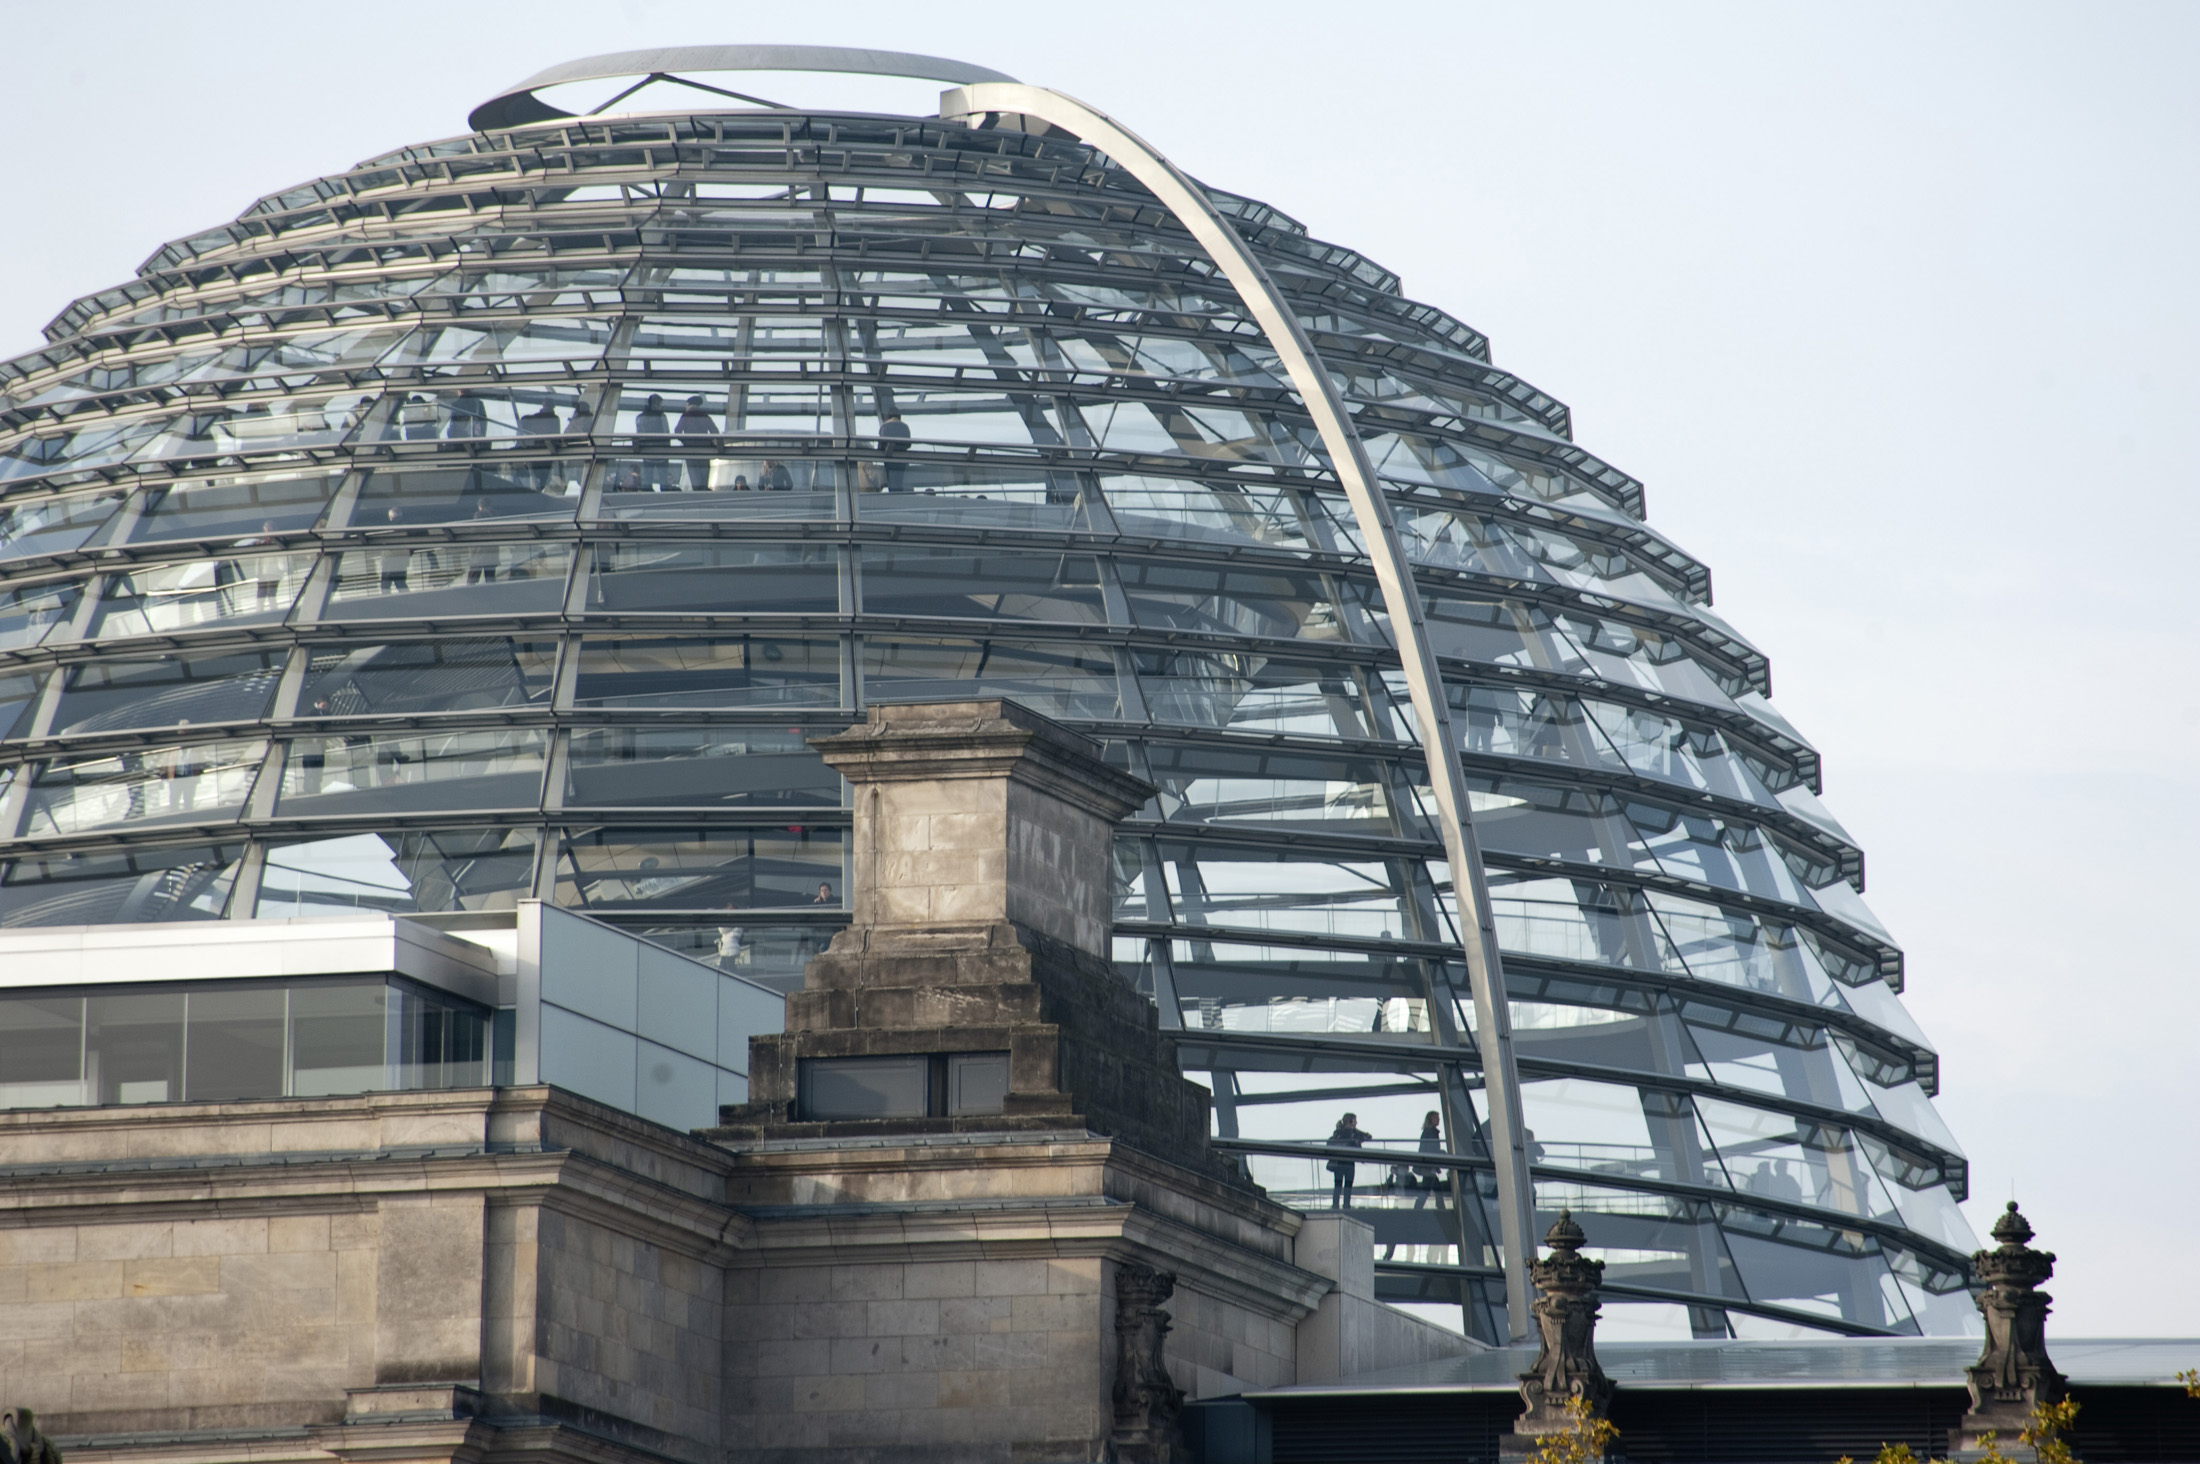 the dome on top of the reichstag, designed by architect Norman Foster